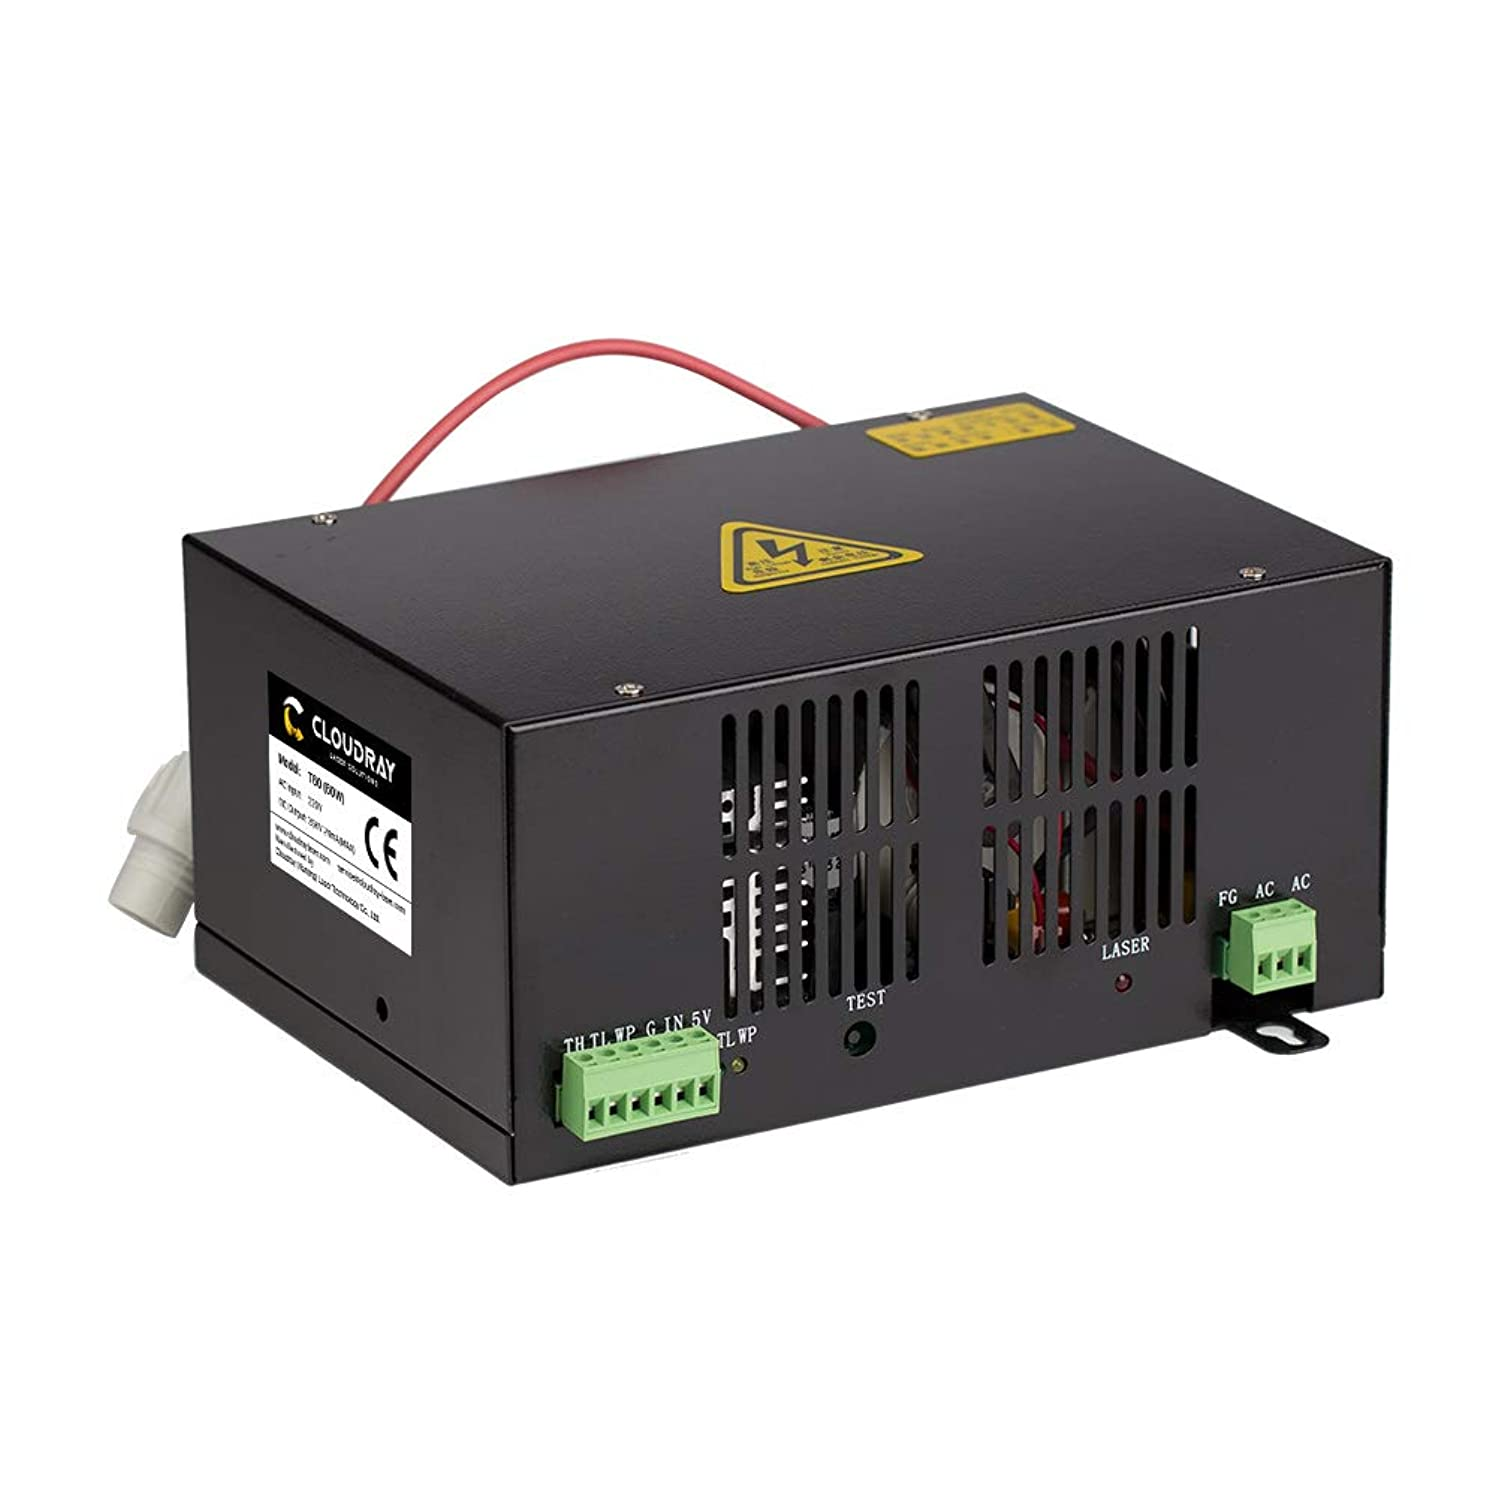 60W CO2 Laser Power Supply T Series HY-T60 Plus 110V for CO2 Laser Tube by Cloudray (Buy More Discounts)